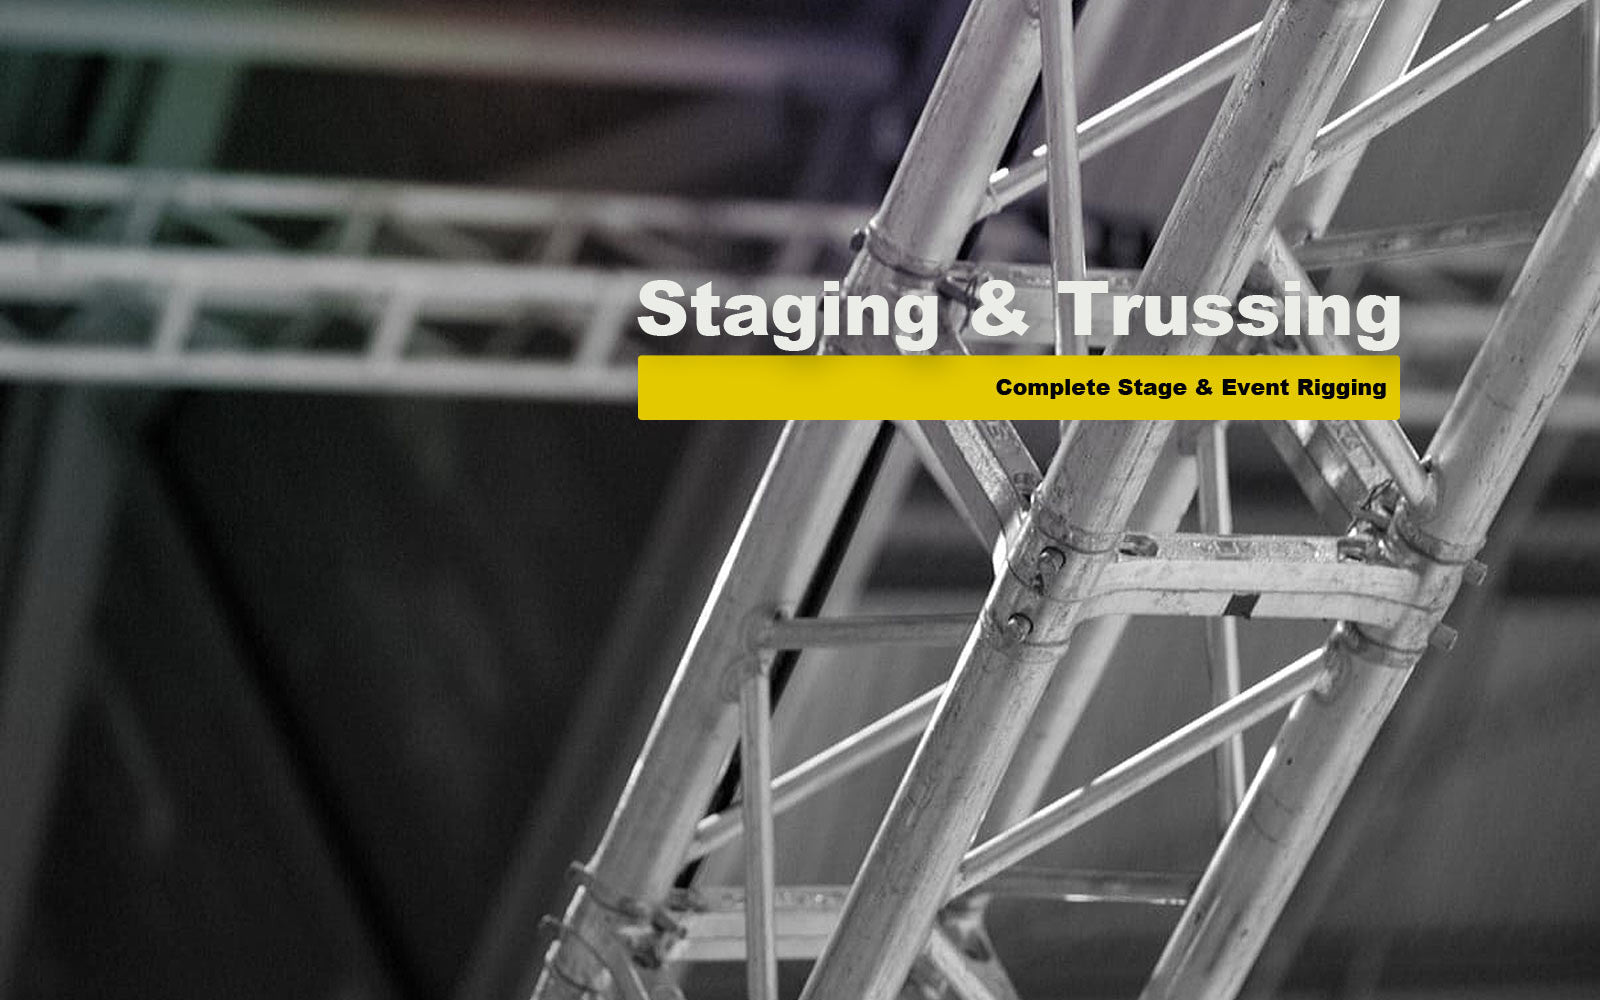 Staging & Trussing